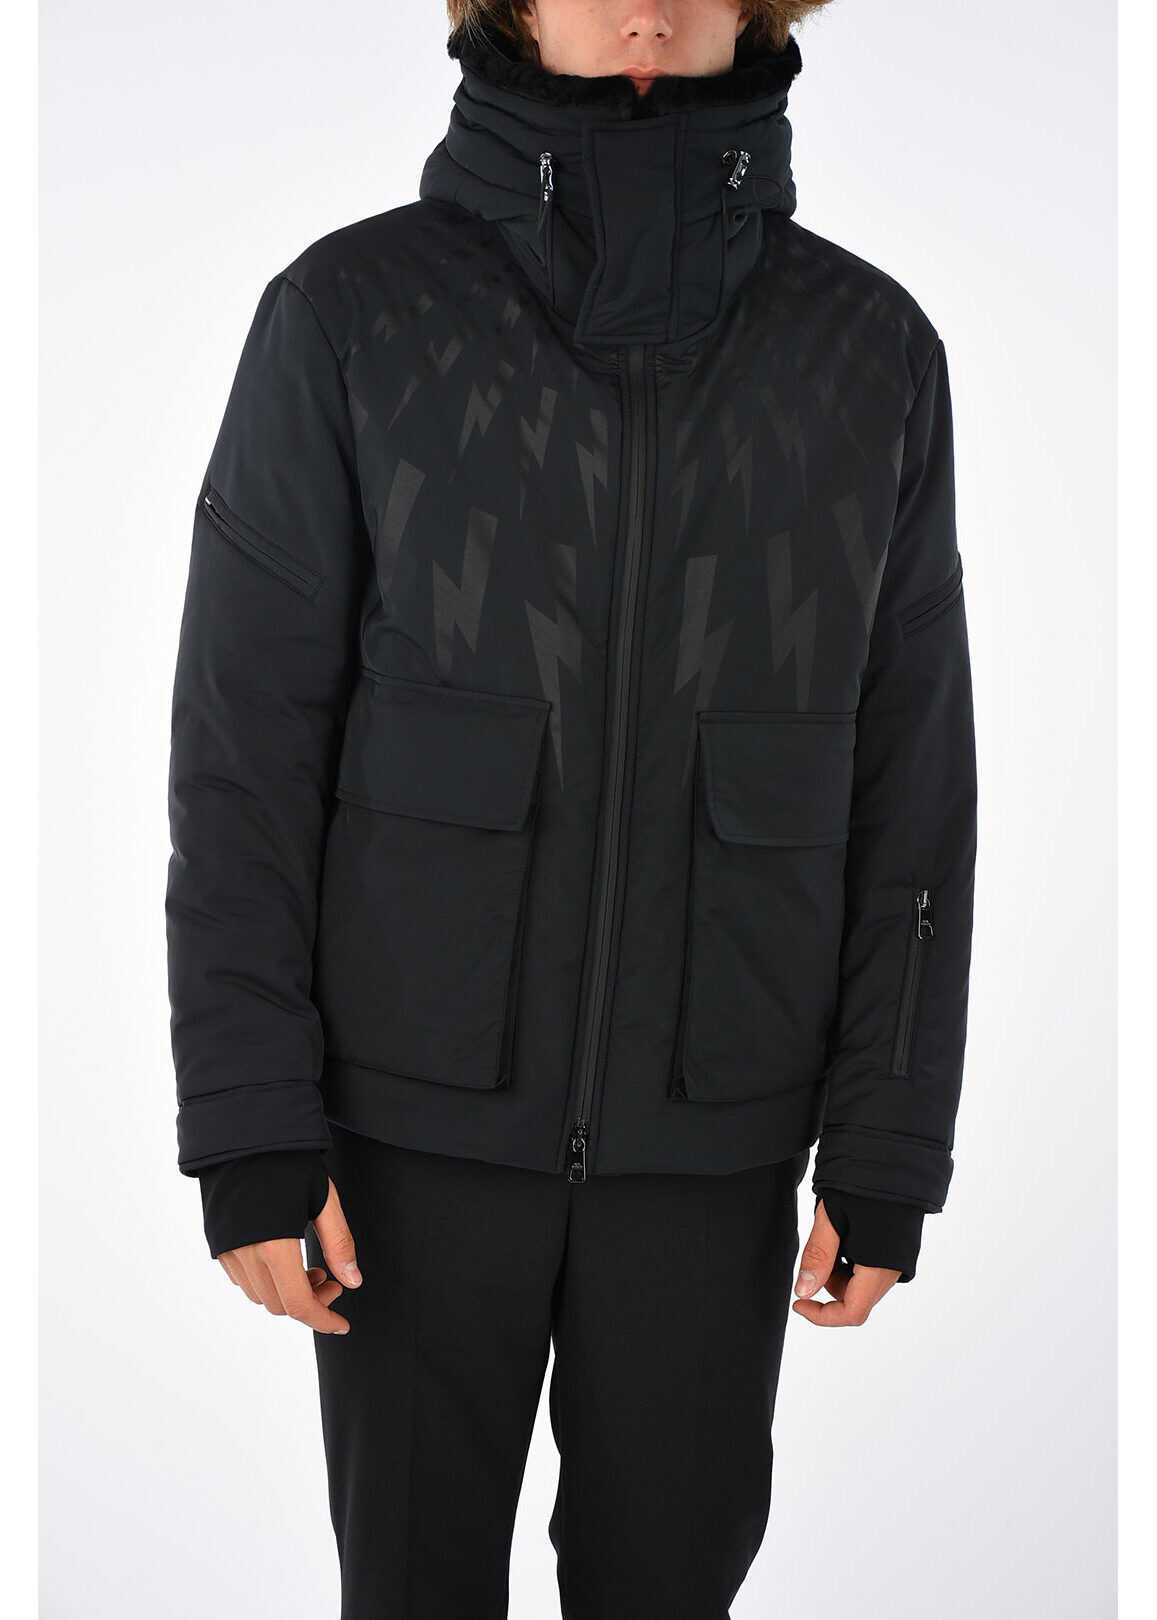 Neil Barrett Thunder Printed Jacket BLACK